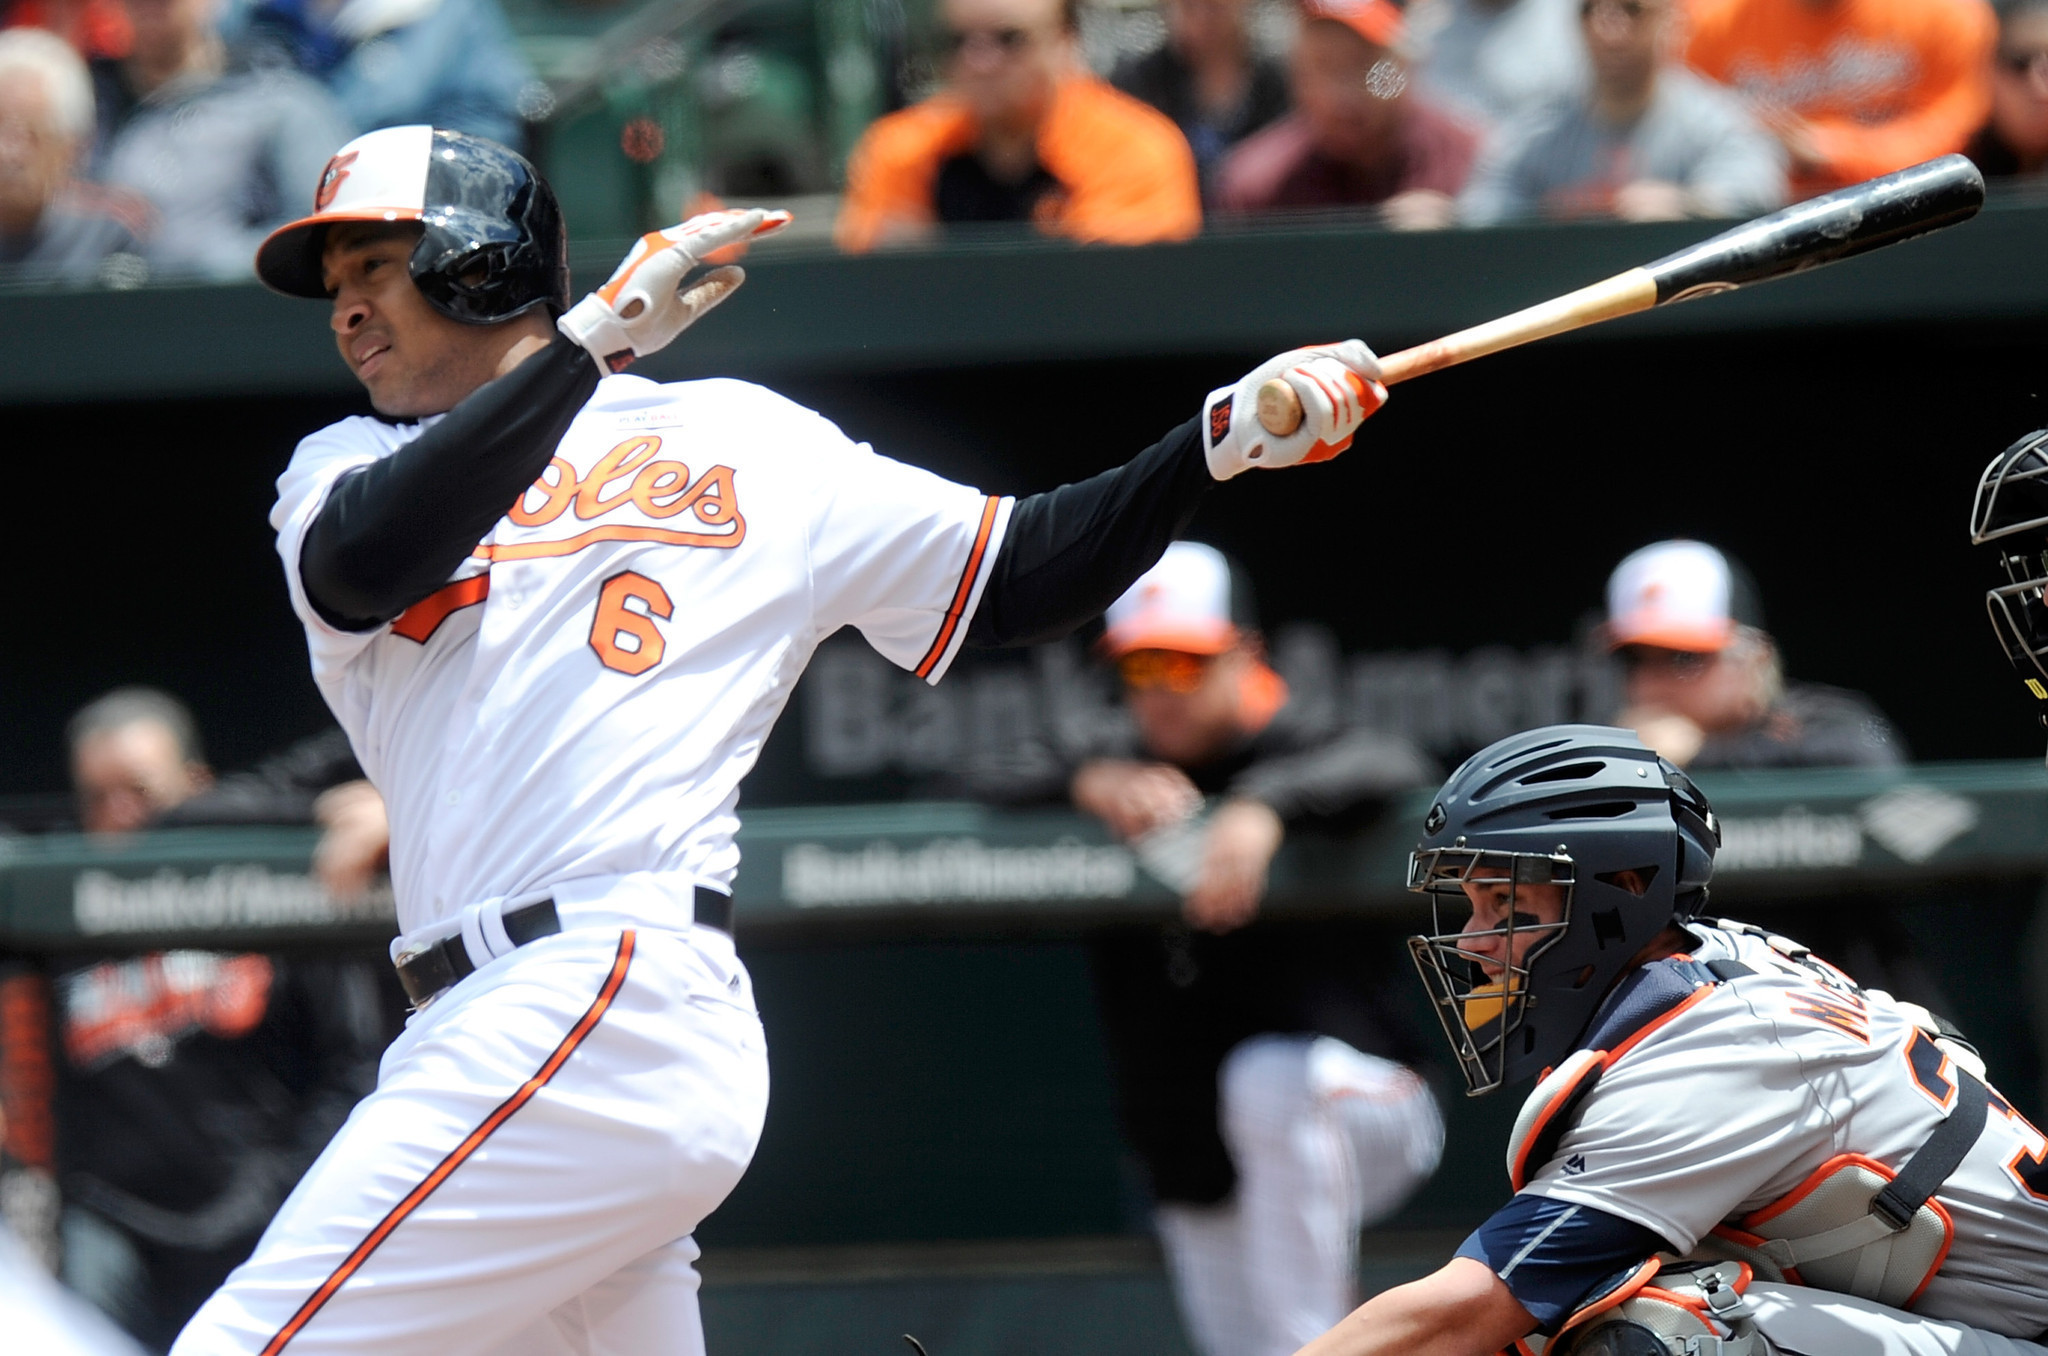 Bal-orioles-on-deck-what-to-watch-tuesday-vs-mariners-20160517